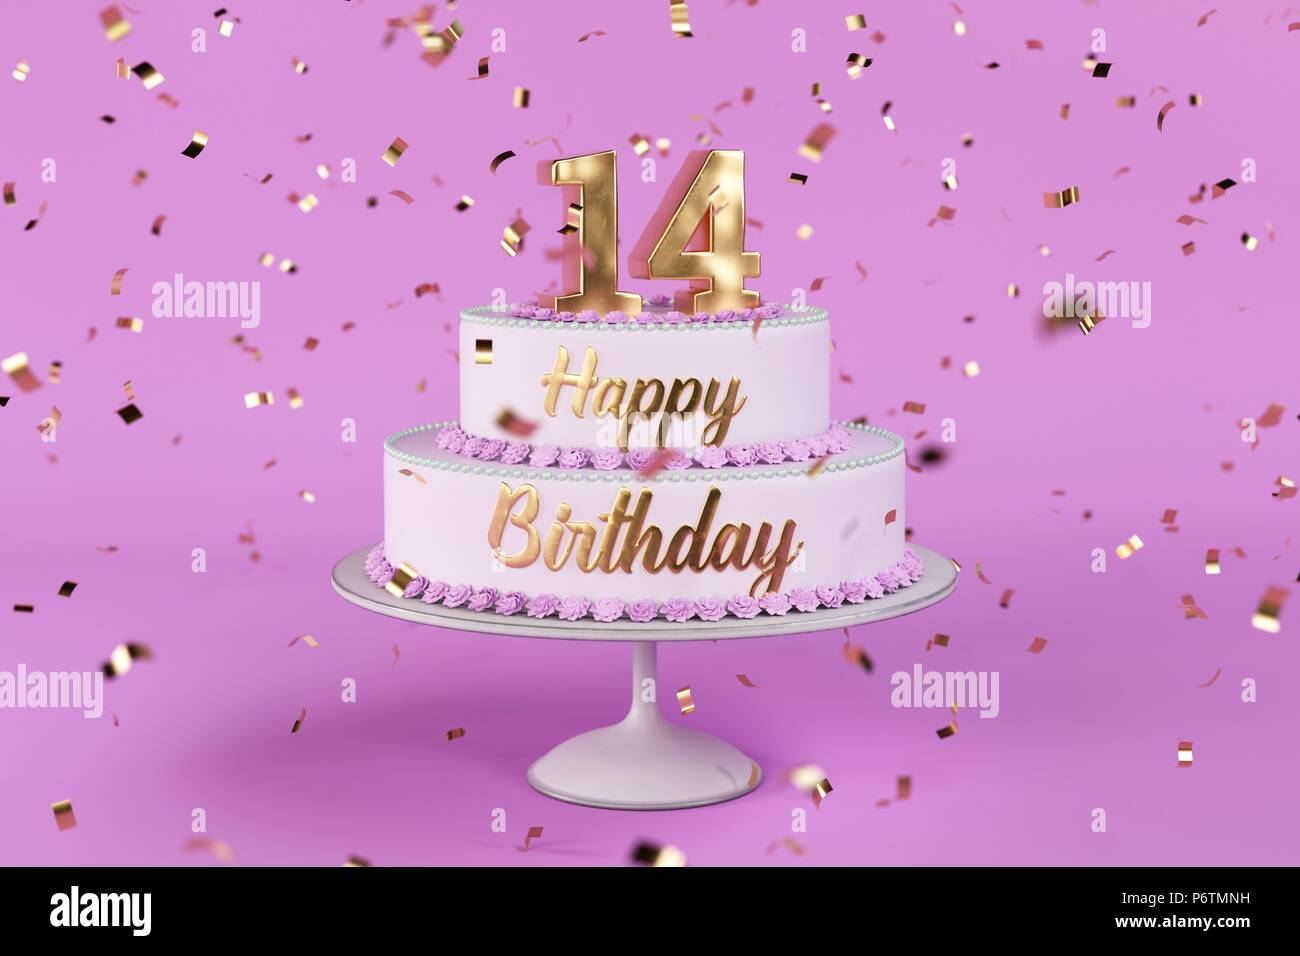 Amazing Birthday Cake With Golden Letters And Numer 14 On Top Stock Photo Personalised Birthday Cards Veneteletsinfo